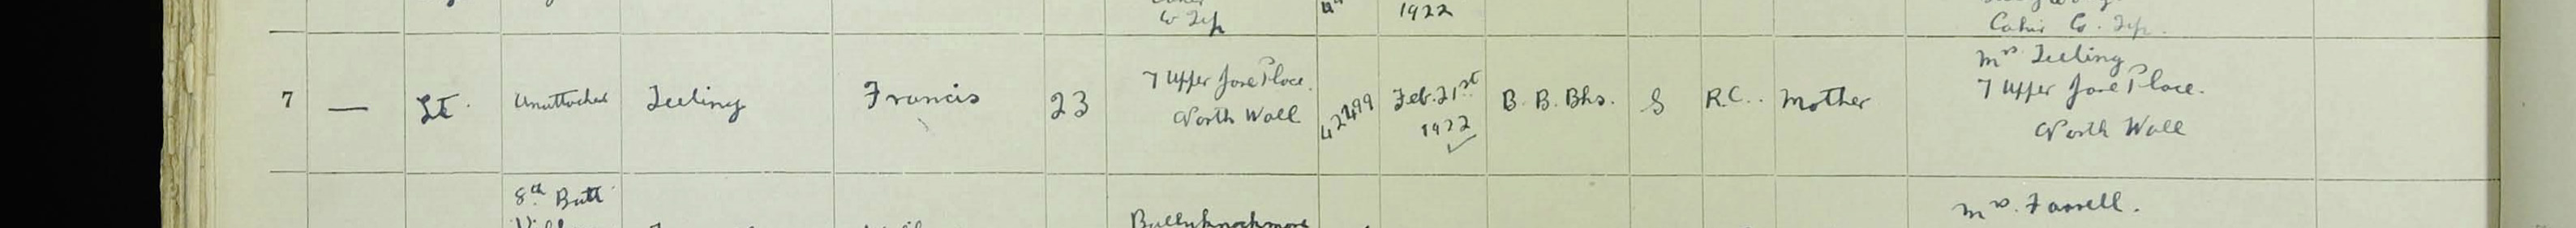 November 12th 1922 - Frank listed as resident at convalescent home resident . (He joined National Army in February 1922)